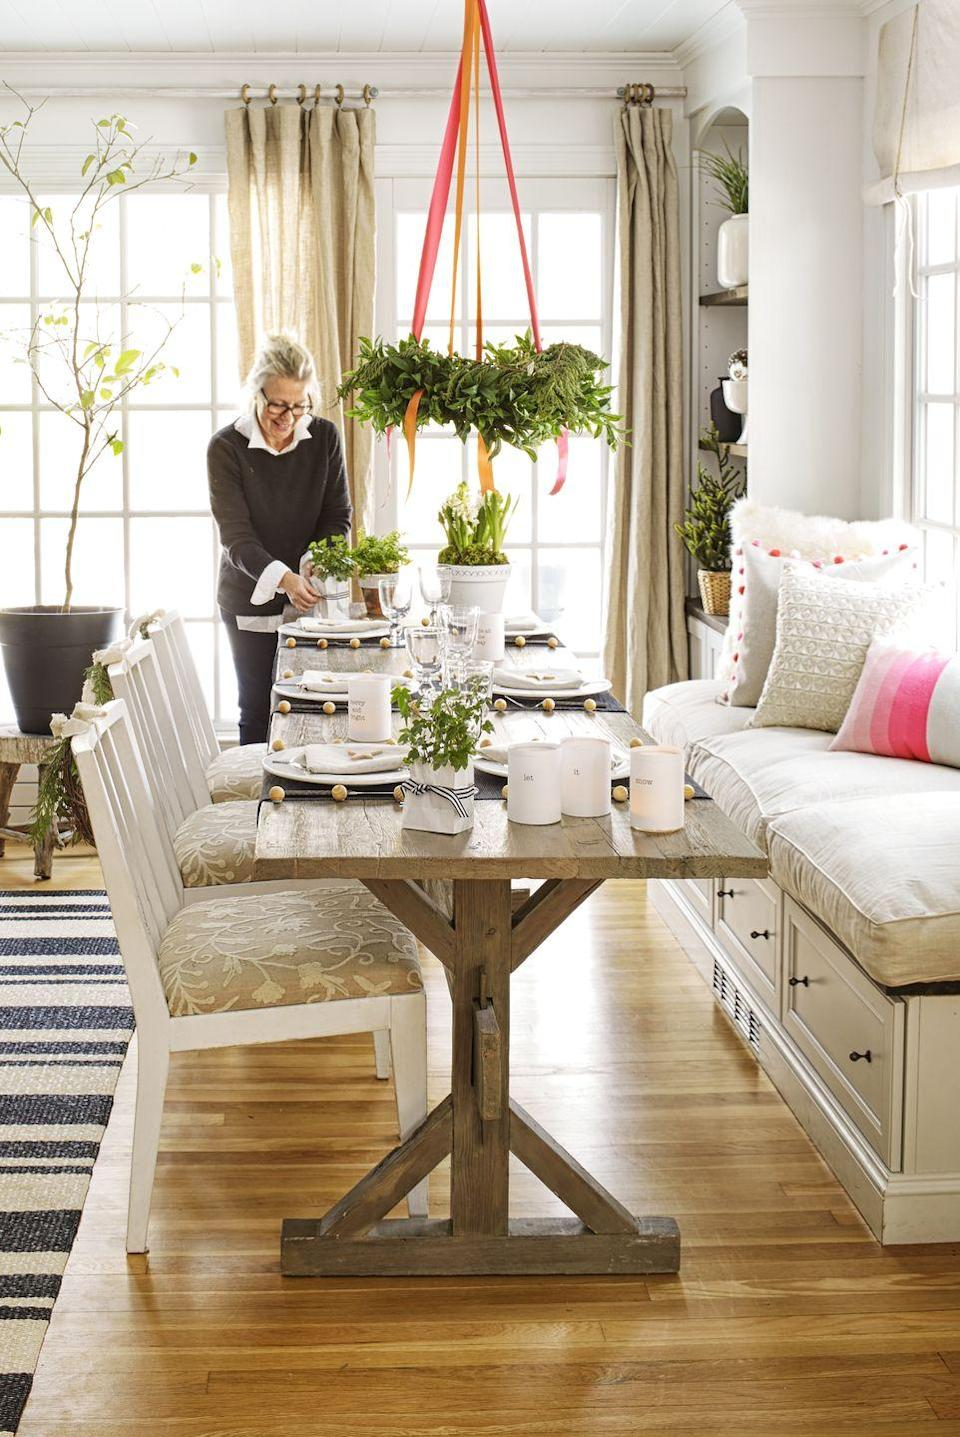 """<p>Using a hook and ribbon, suspend greens from the ceiling above your table. Love the look, but have a permanent light fixture? Drape pine around the frame and secure with ribbon.</p><p><span class=""""redactor-invisible-space""""><a class=""""link rapid-noclick-resp"""" href=""""https://go.redirectingat.com?id=74968X1596630&url=https%3A%2F%2Fwww.etsy.com%2Flisting%2F240787306%2Fpreserved-boxwood-wreathall&sref=https%3A%2F%2Fwww.goodhousekeeping.com%2Fholidays%2Fchristmas-ideas%2Fhow-to%2Fg2196%2Fchristmas-table-settings%2F"""" rel=""""nofollow noopener"""" target=""""_blank"""" data-ylk=""""slk:SHOP WREATHS"""">SHOP WREATHS</a> </span><br></p>"""